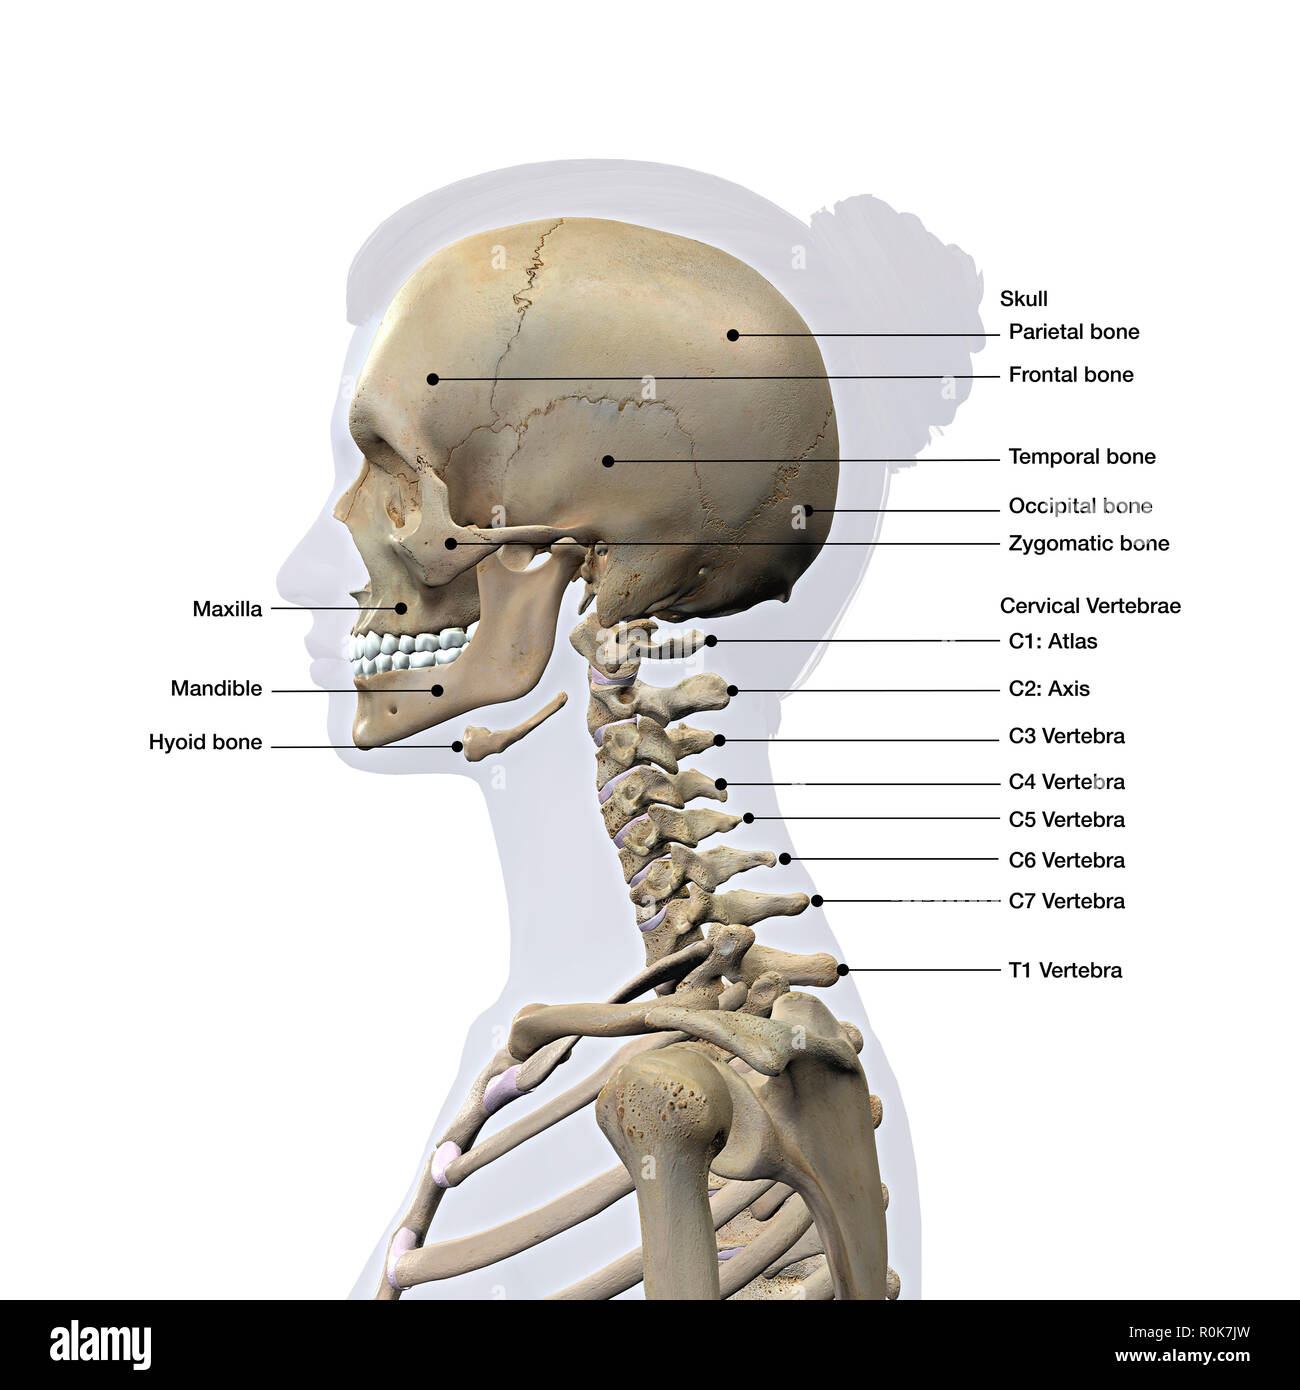 Cervical Vertebrae Stock Photos Cervical Vertebrae Stock Images